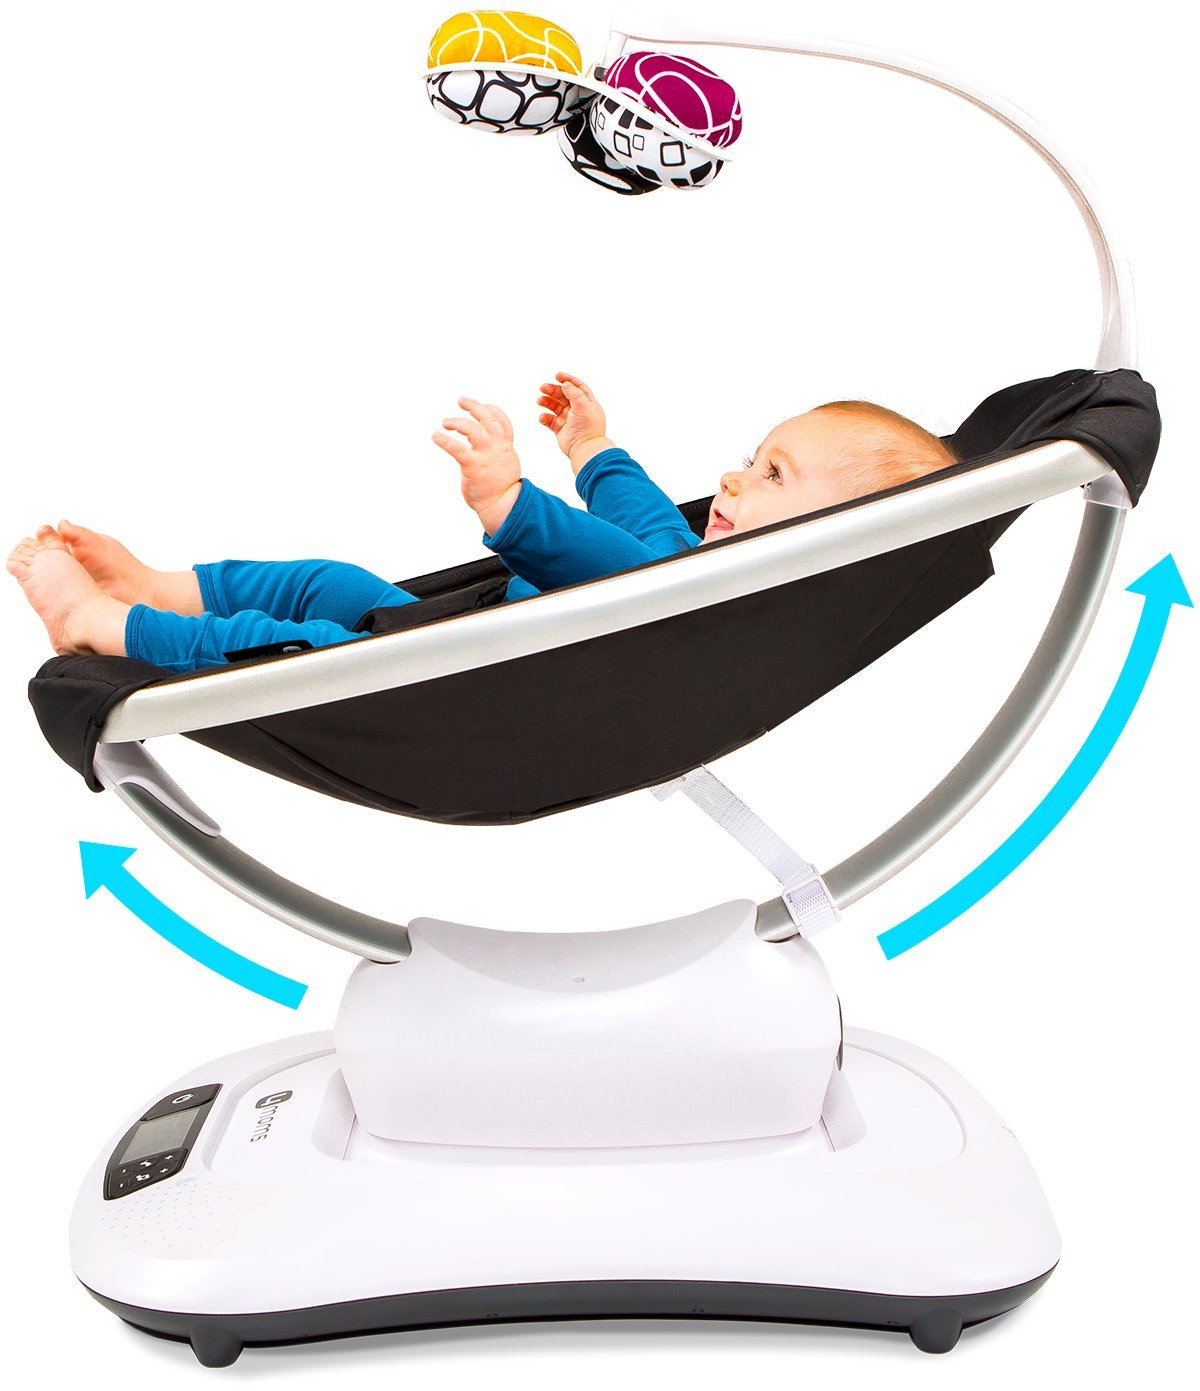 4Moms MamaRoo: Best baby swing for colic